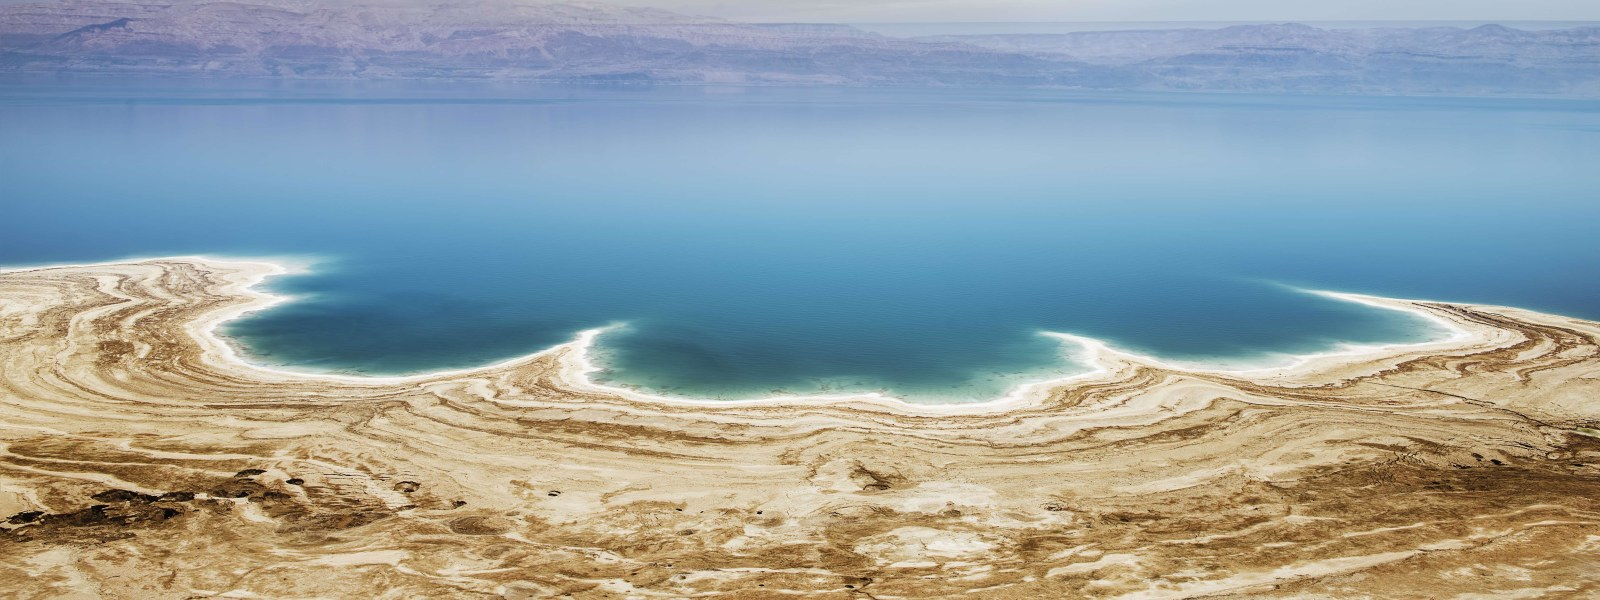 dead sea (israel) - private tours, sightseeing & city tours   tourhq